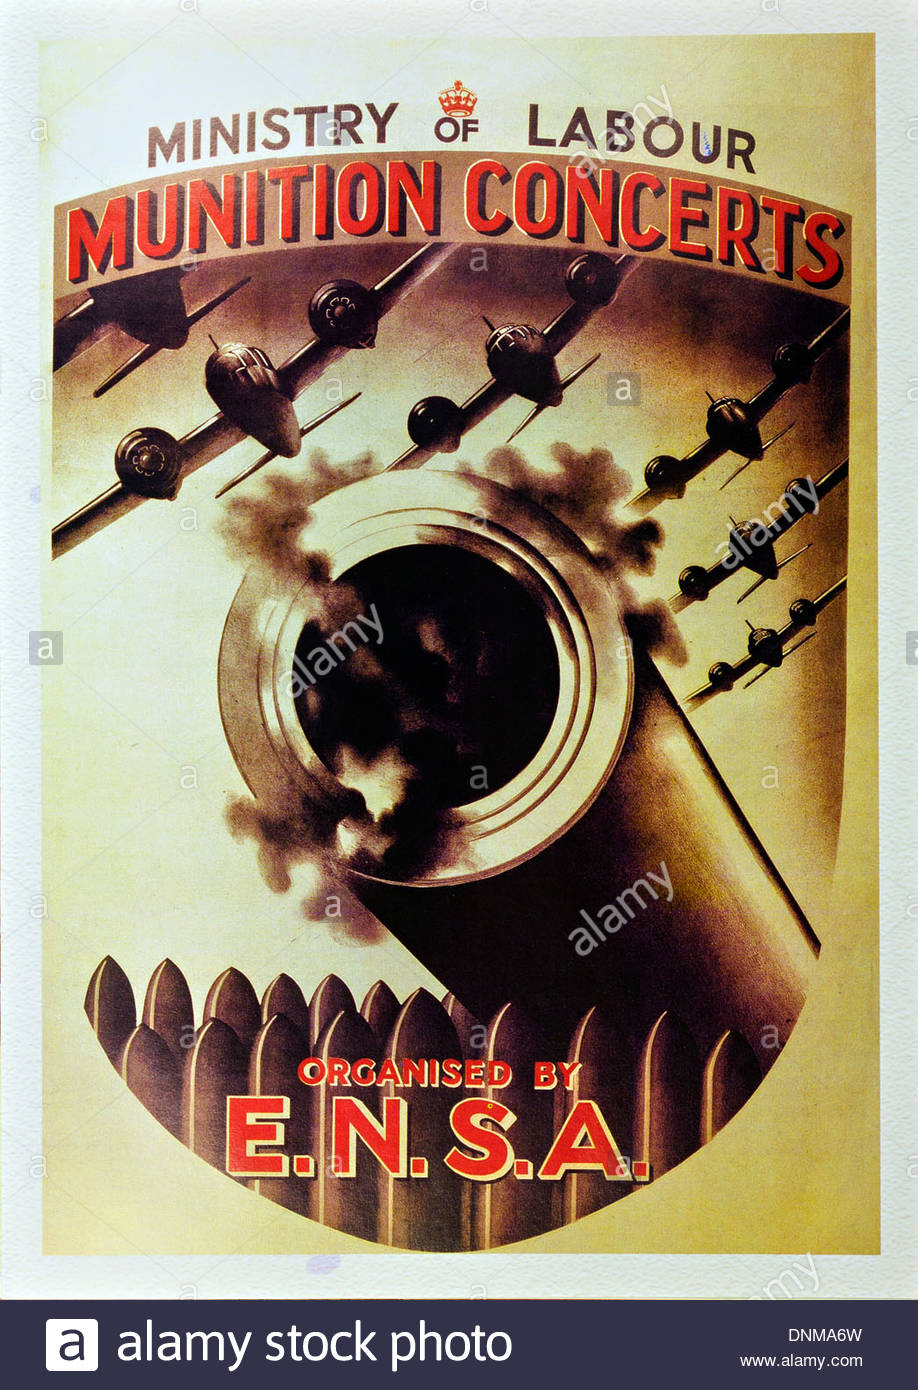 second world war poster of ministry of labour munition concerts organised by ensa - Stock Image